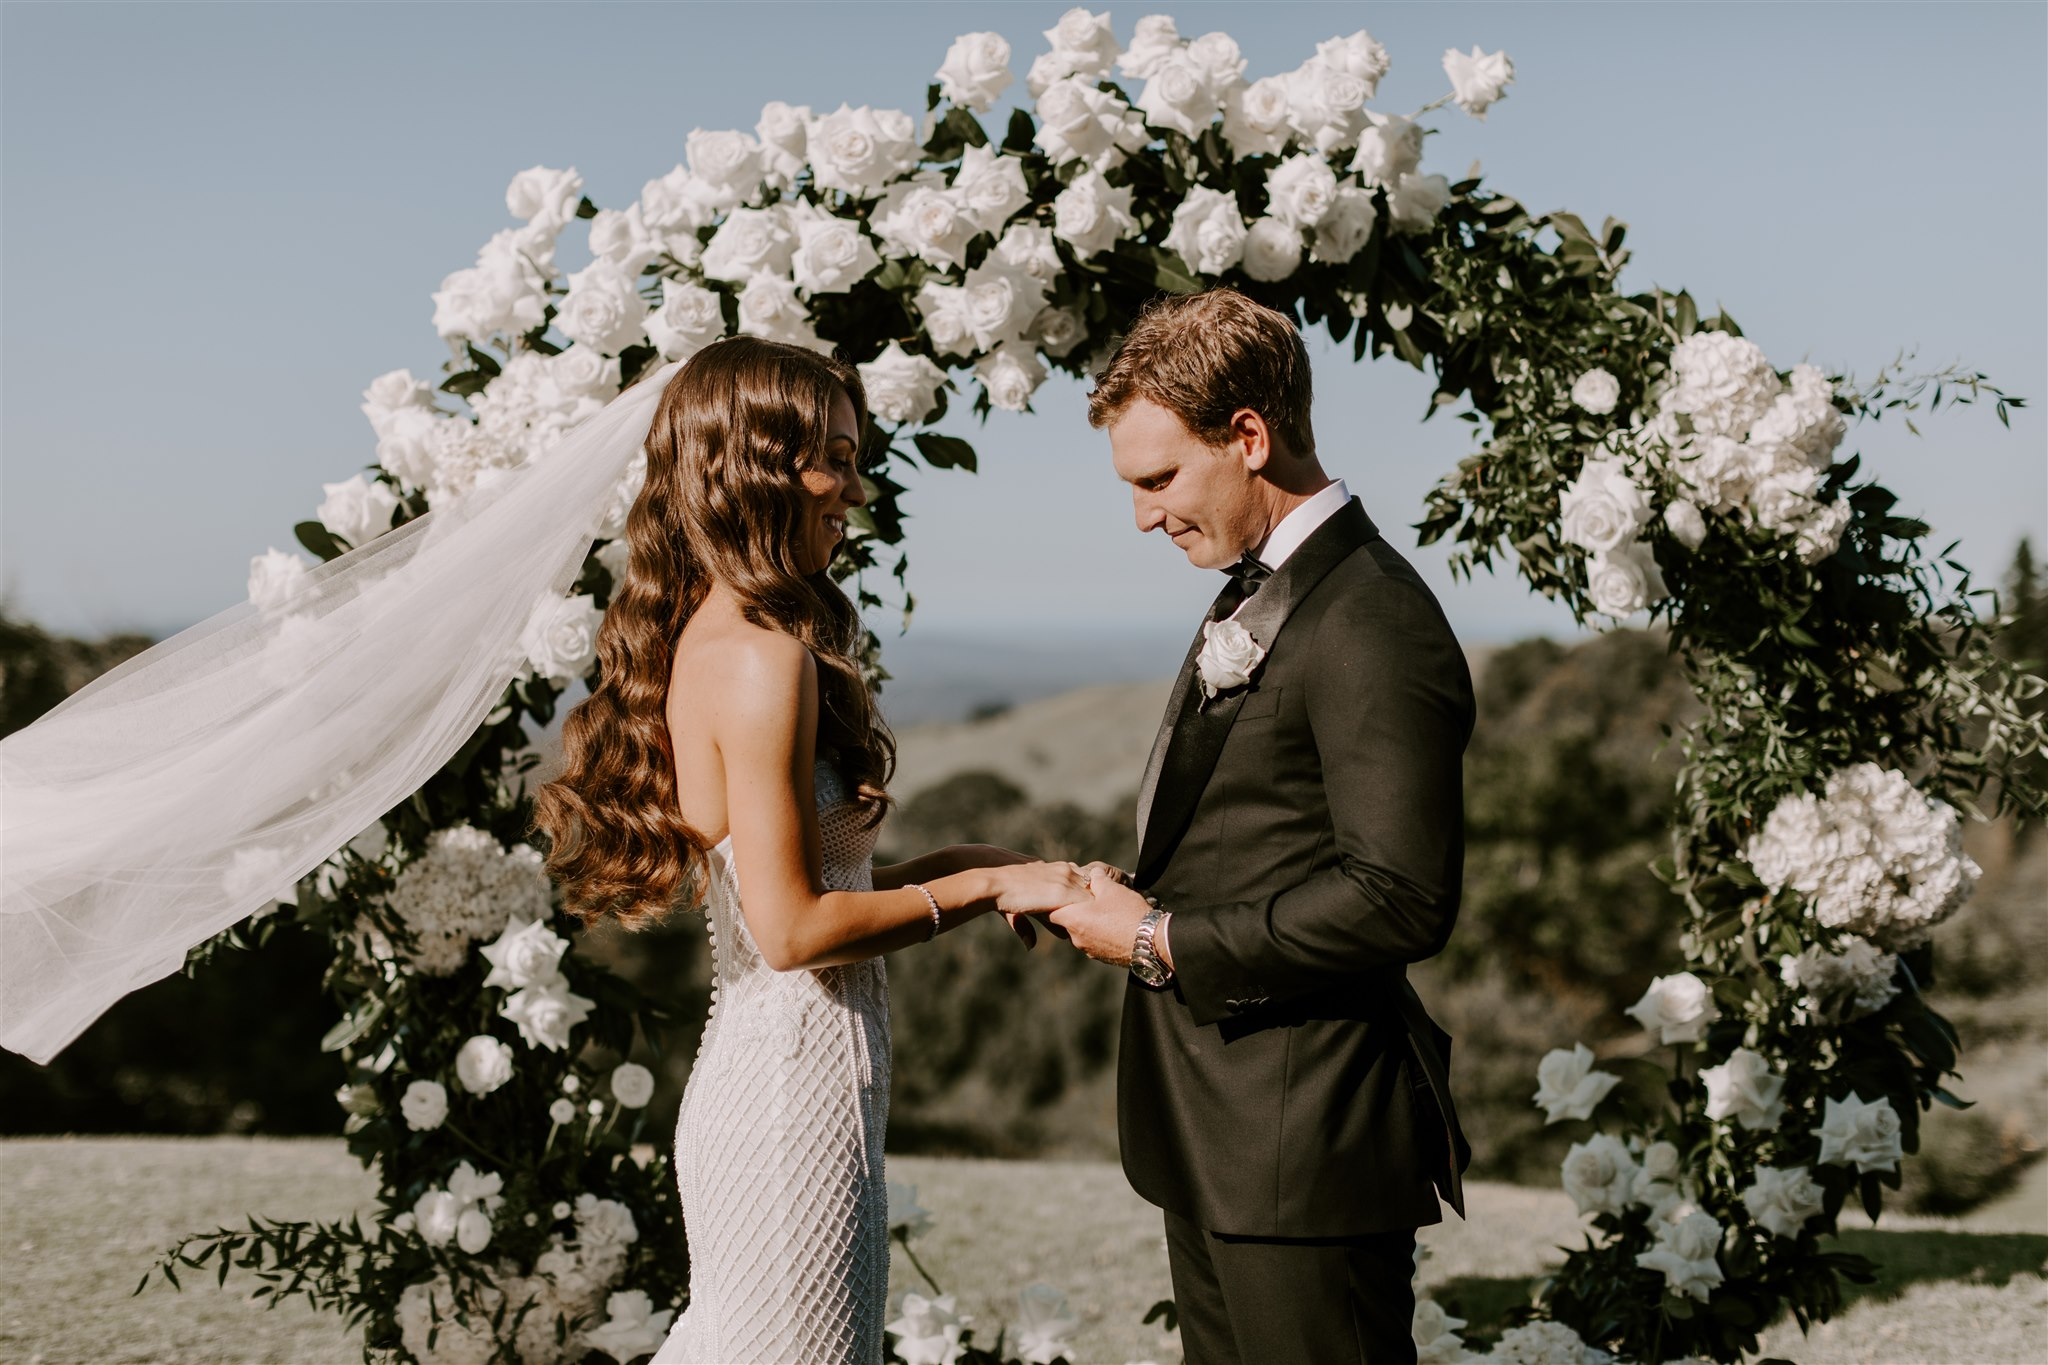 Ceremony love ring with lush greenery and white flowers